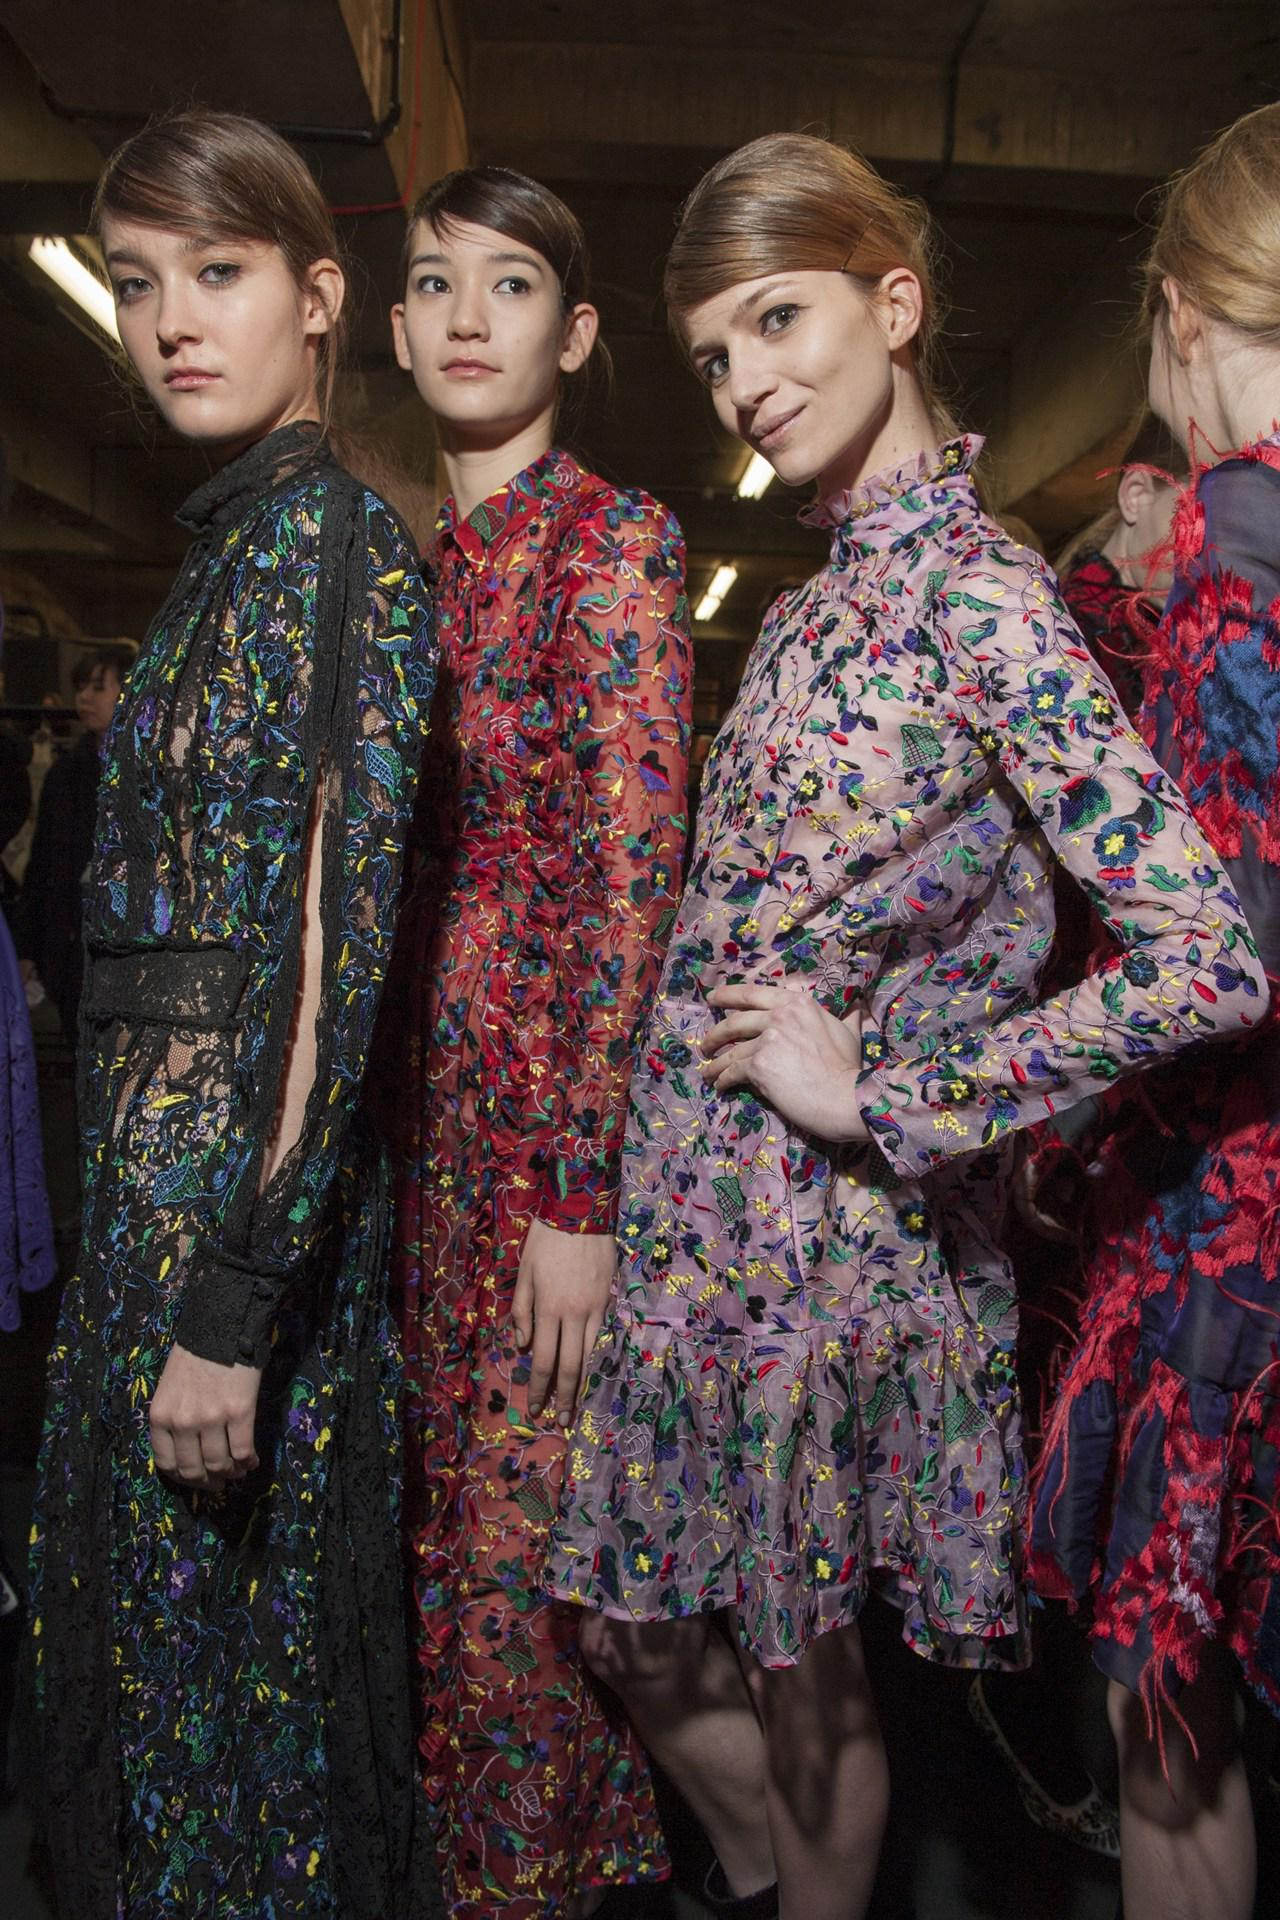 London Fashion Week is on the move - http://t.co/gmrwQAP6bt http://t.co/gR5A6IUqxw